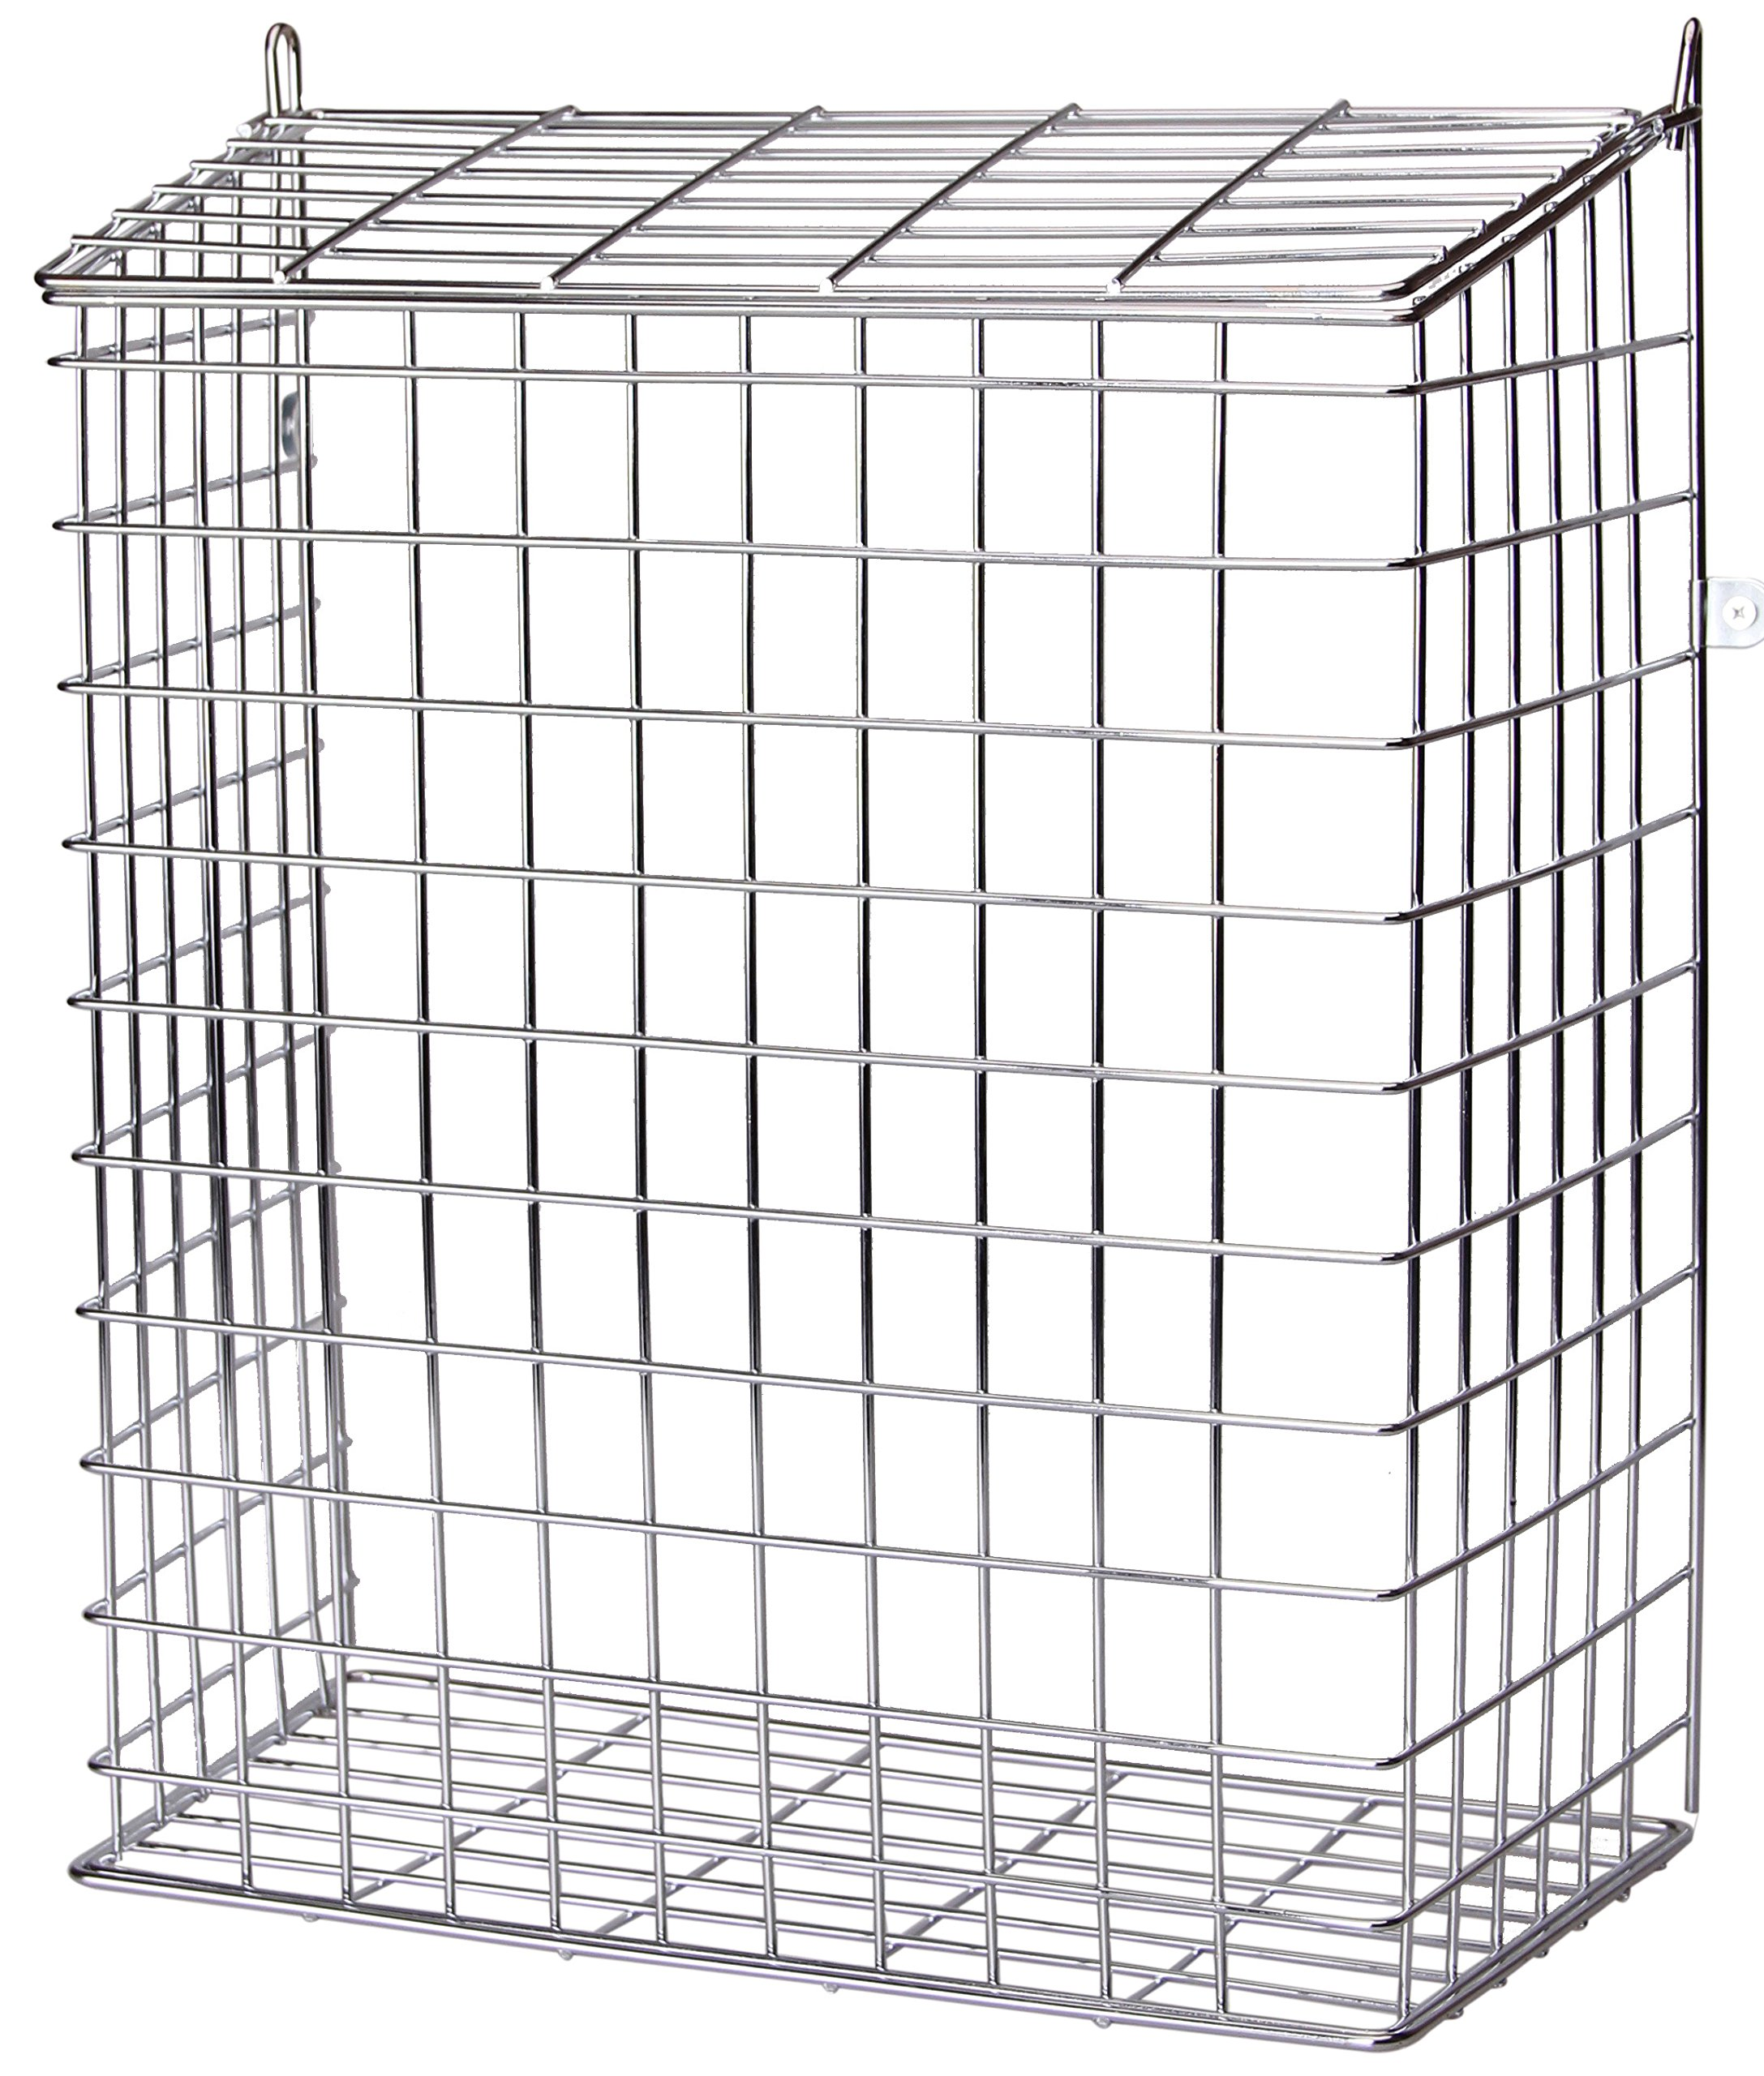 Buckingham 30050 Front Door Letter Cage, Guard, Basket, Mail Catcher, Post Box, Letter Box, Plated, Pre-Assembled, Chrome by Buckingham